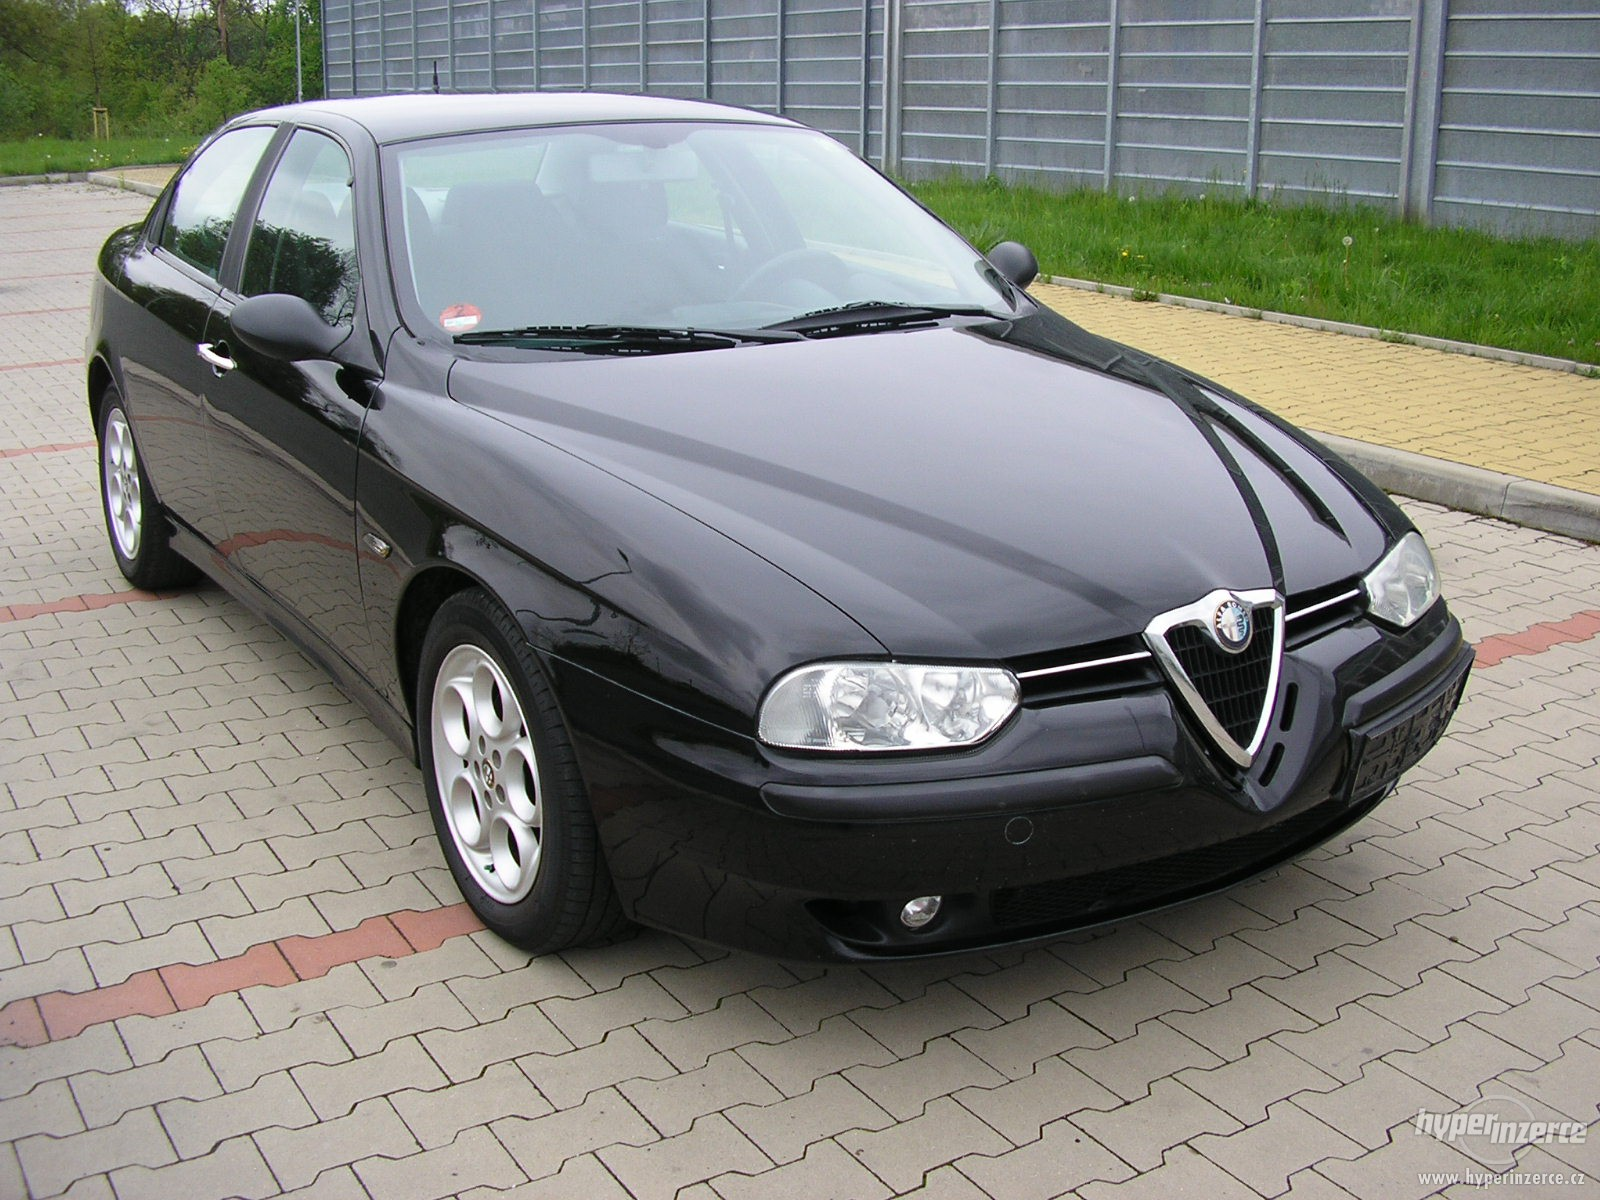 2003 alfa romeo 156 2 4 jtd car photos catalog 2018. Black Bedroom Furniture Sets. Home Design Ideas